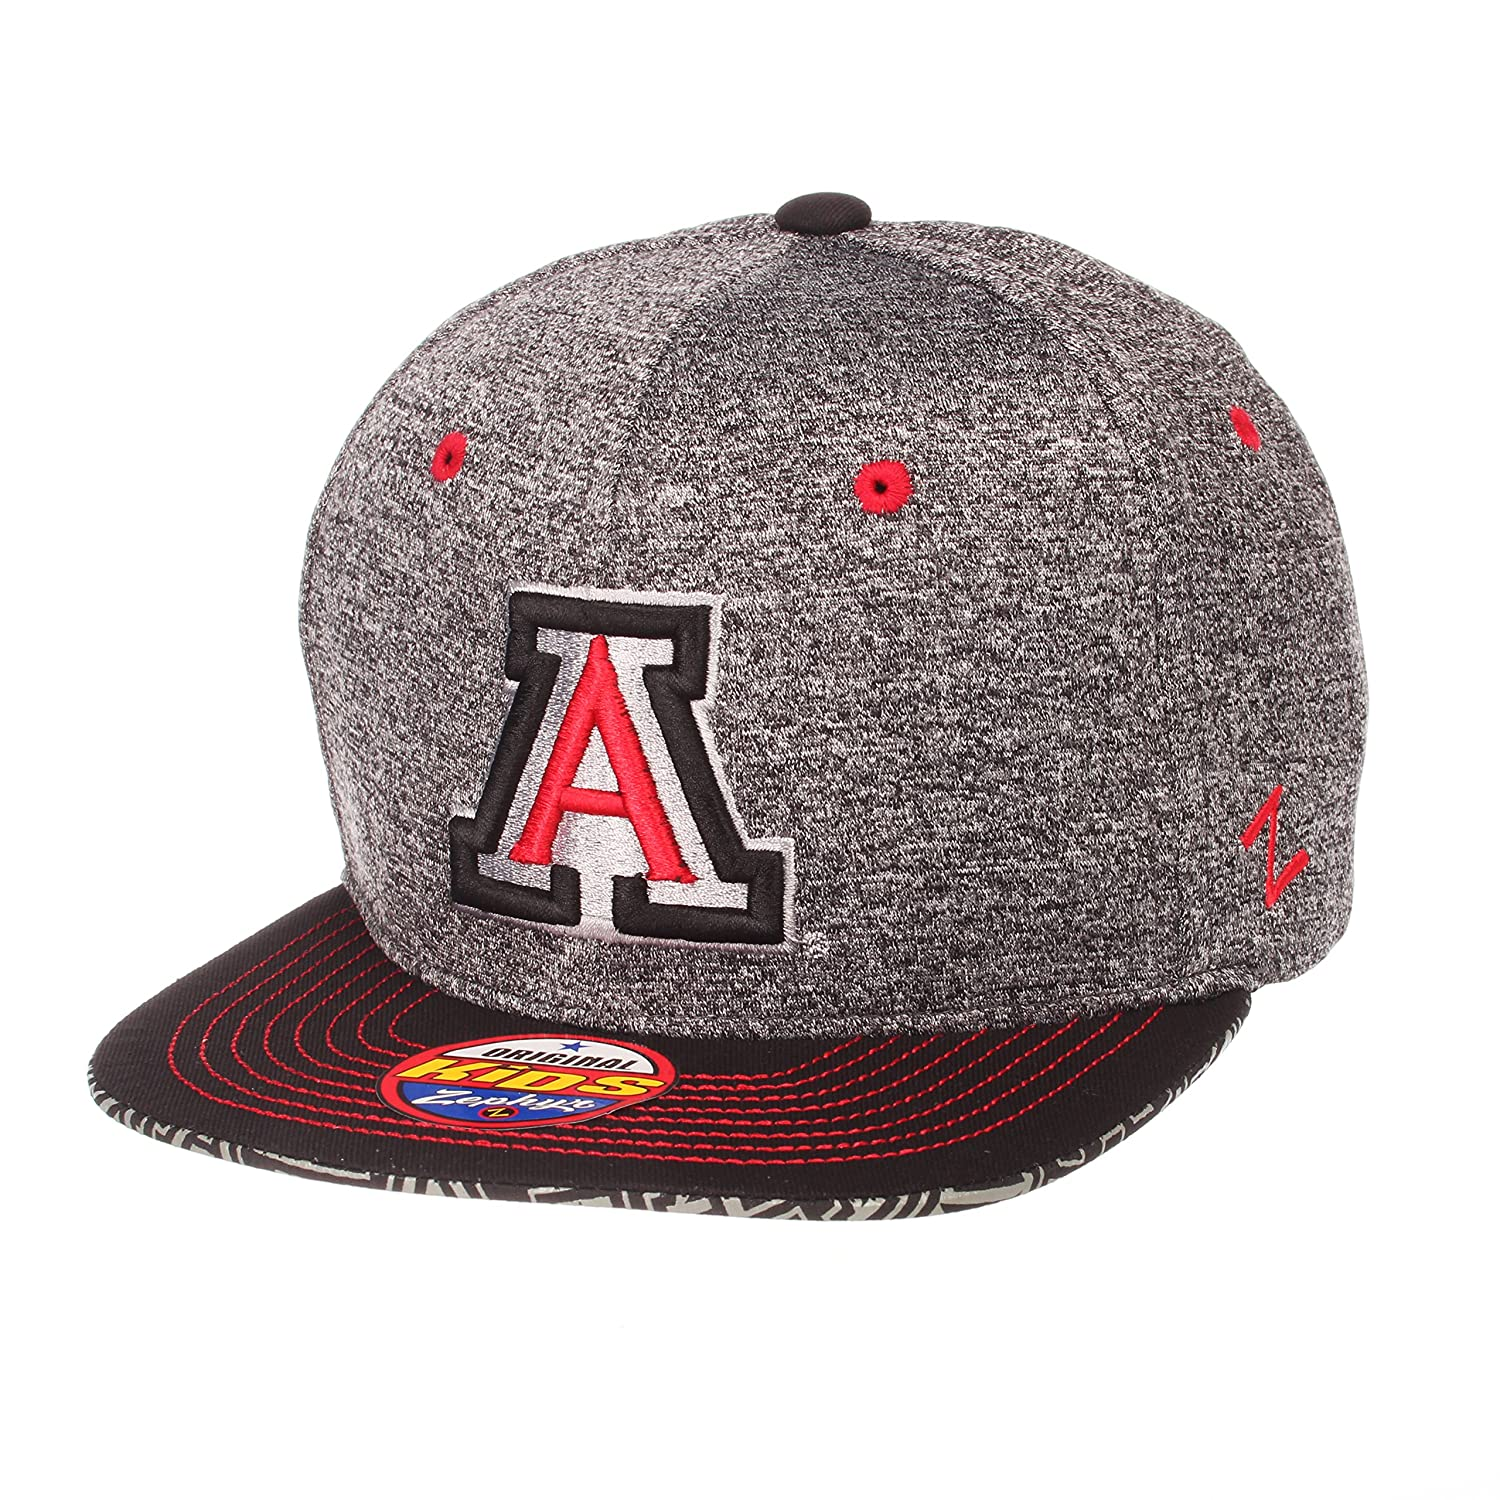 14bba27a4889f ZHATS NCAA Boys Prodigy Youth NCAA Snapback Hat Youth Adjustable Gray Team  Color Zephyr Graf